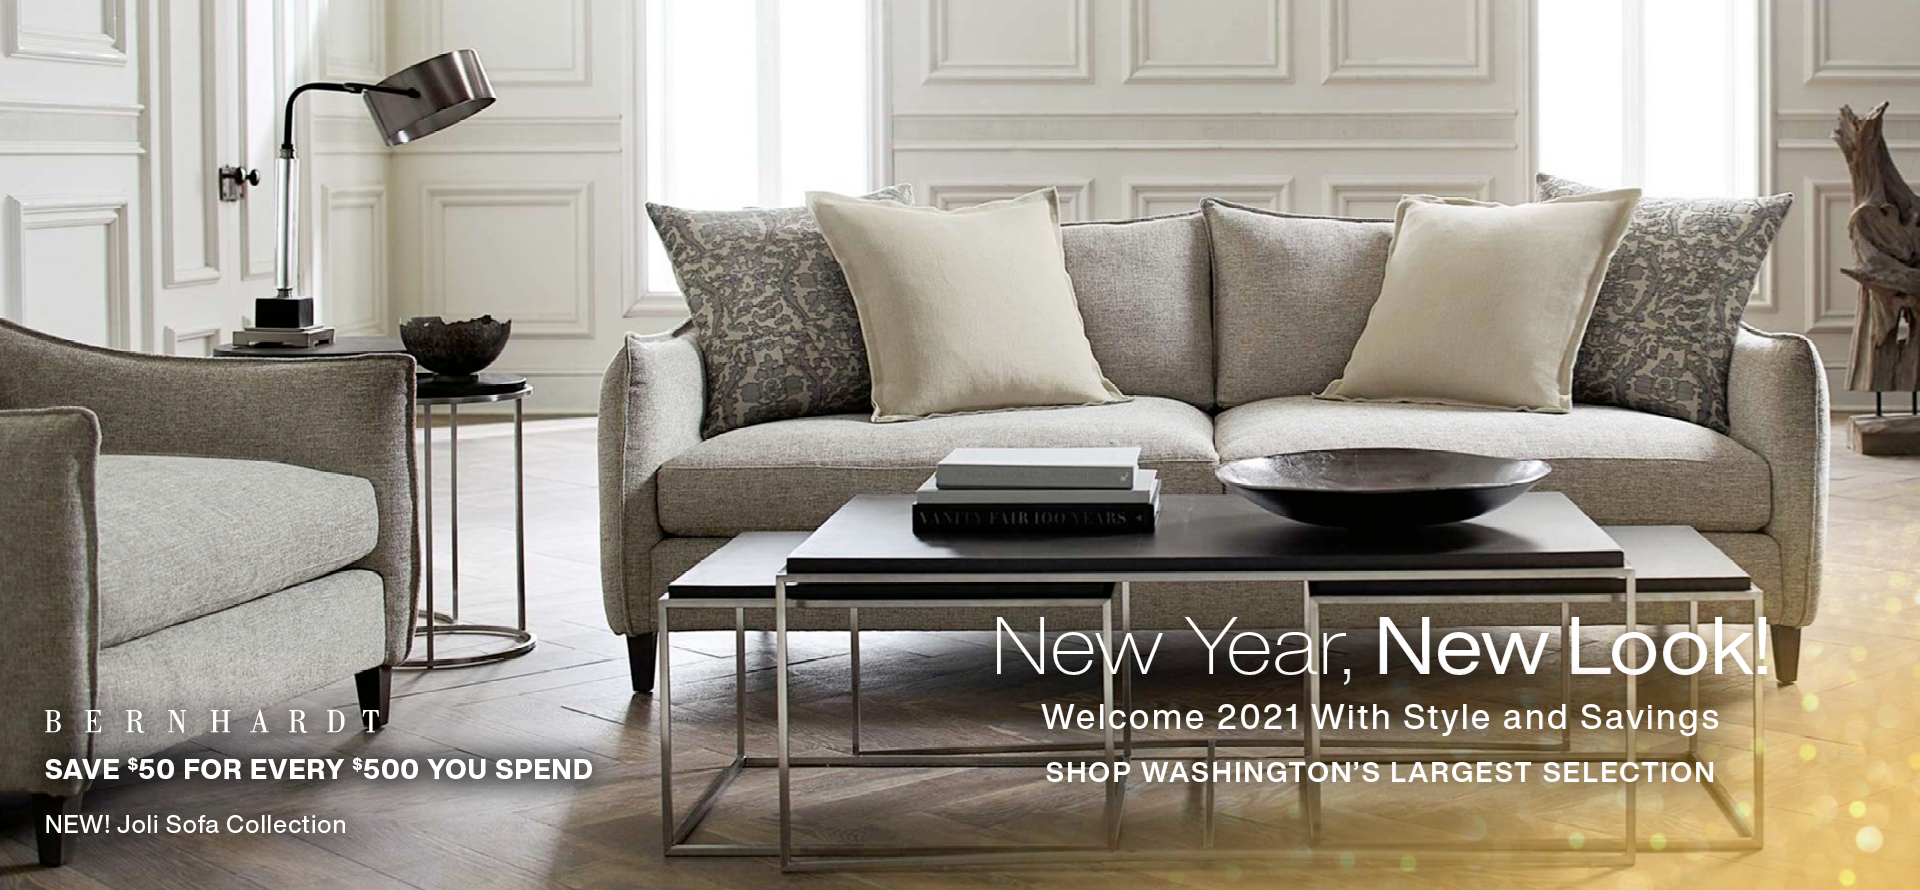 SAVE $50 FOR EVERY $500 SPENT On Bernhardt Bedroom, Dining Room and Occasional Furniture